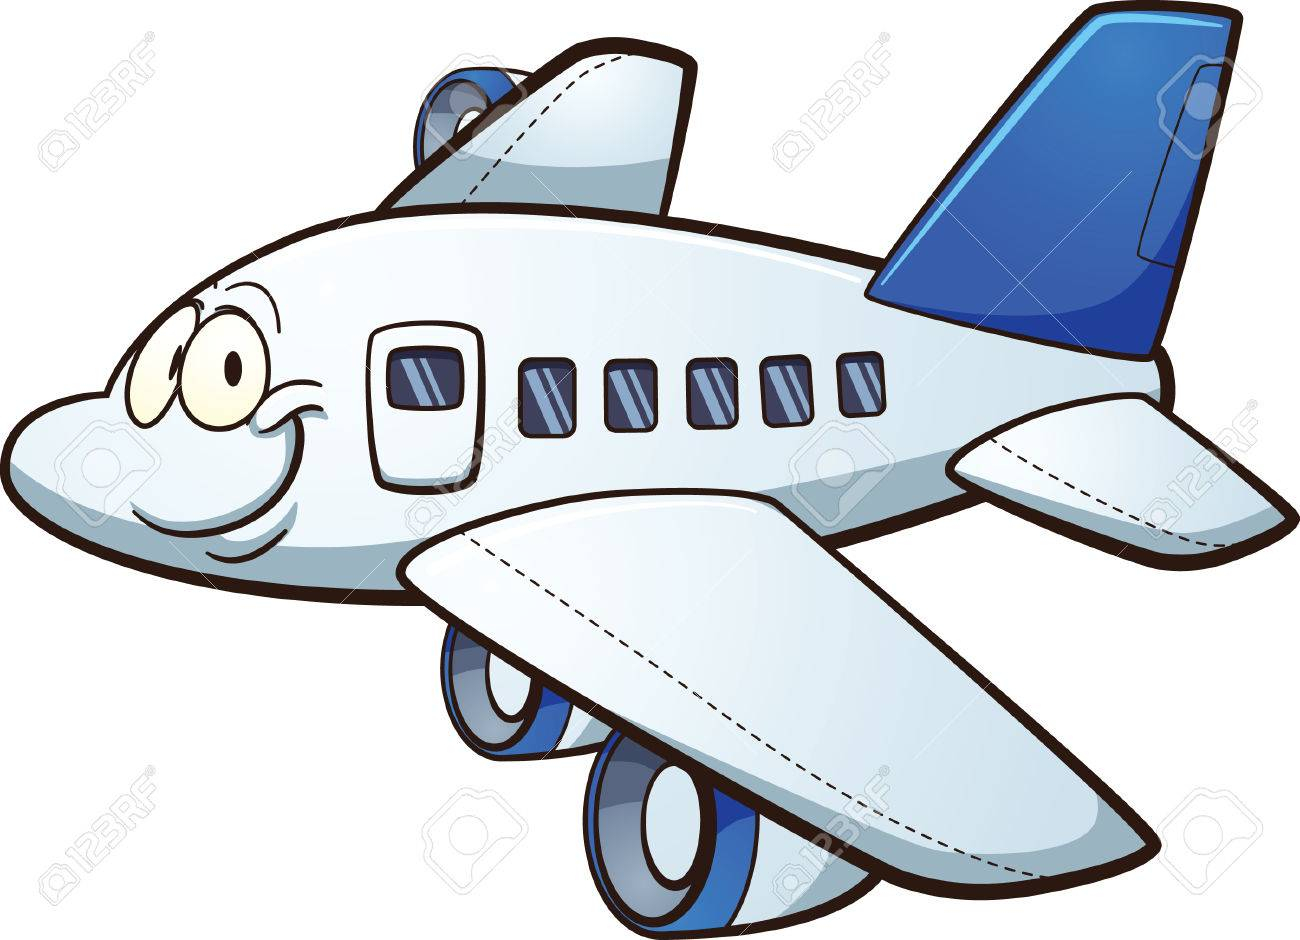 1300x940 Aircraft Drawing Easy Airplane Black And White Tutorial Cartoon